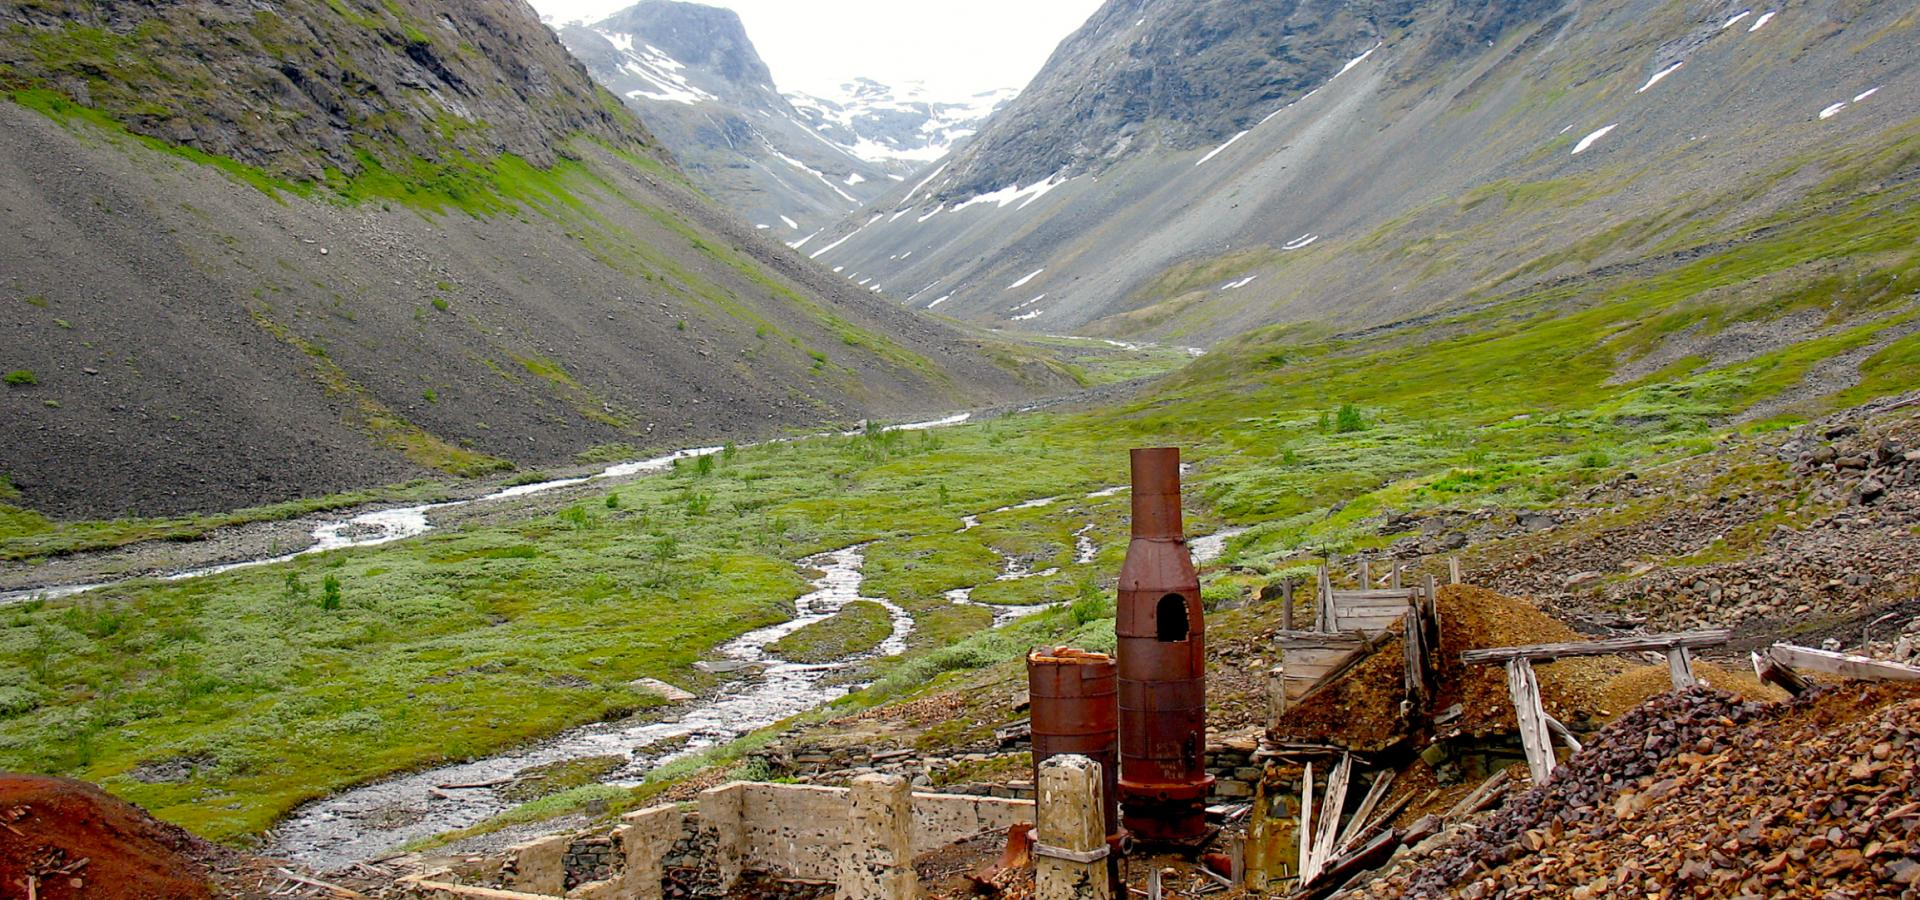 Ruins of the mining in a valley